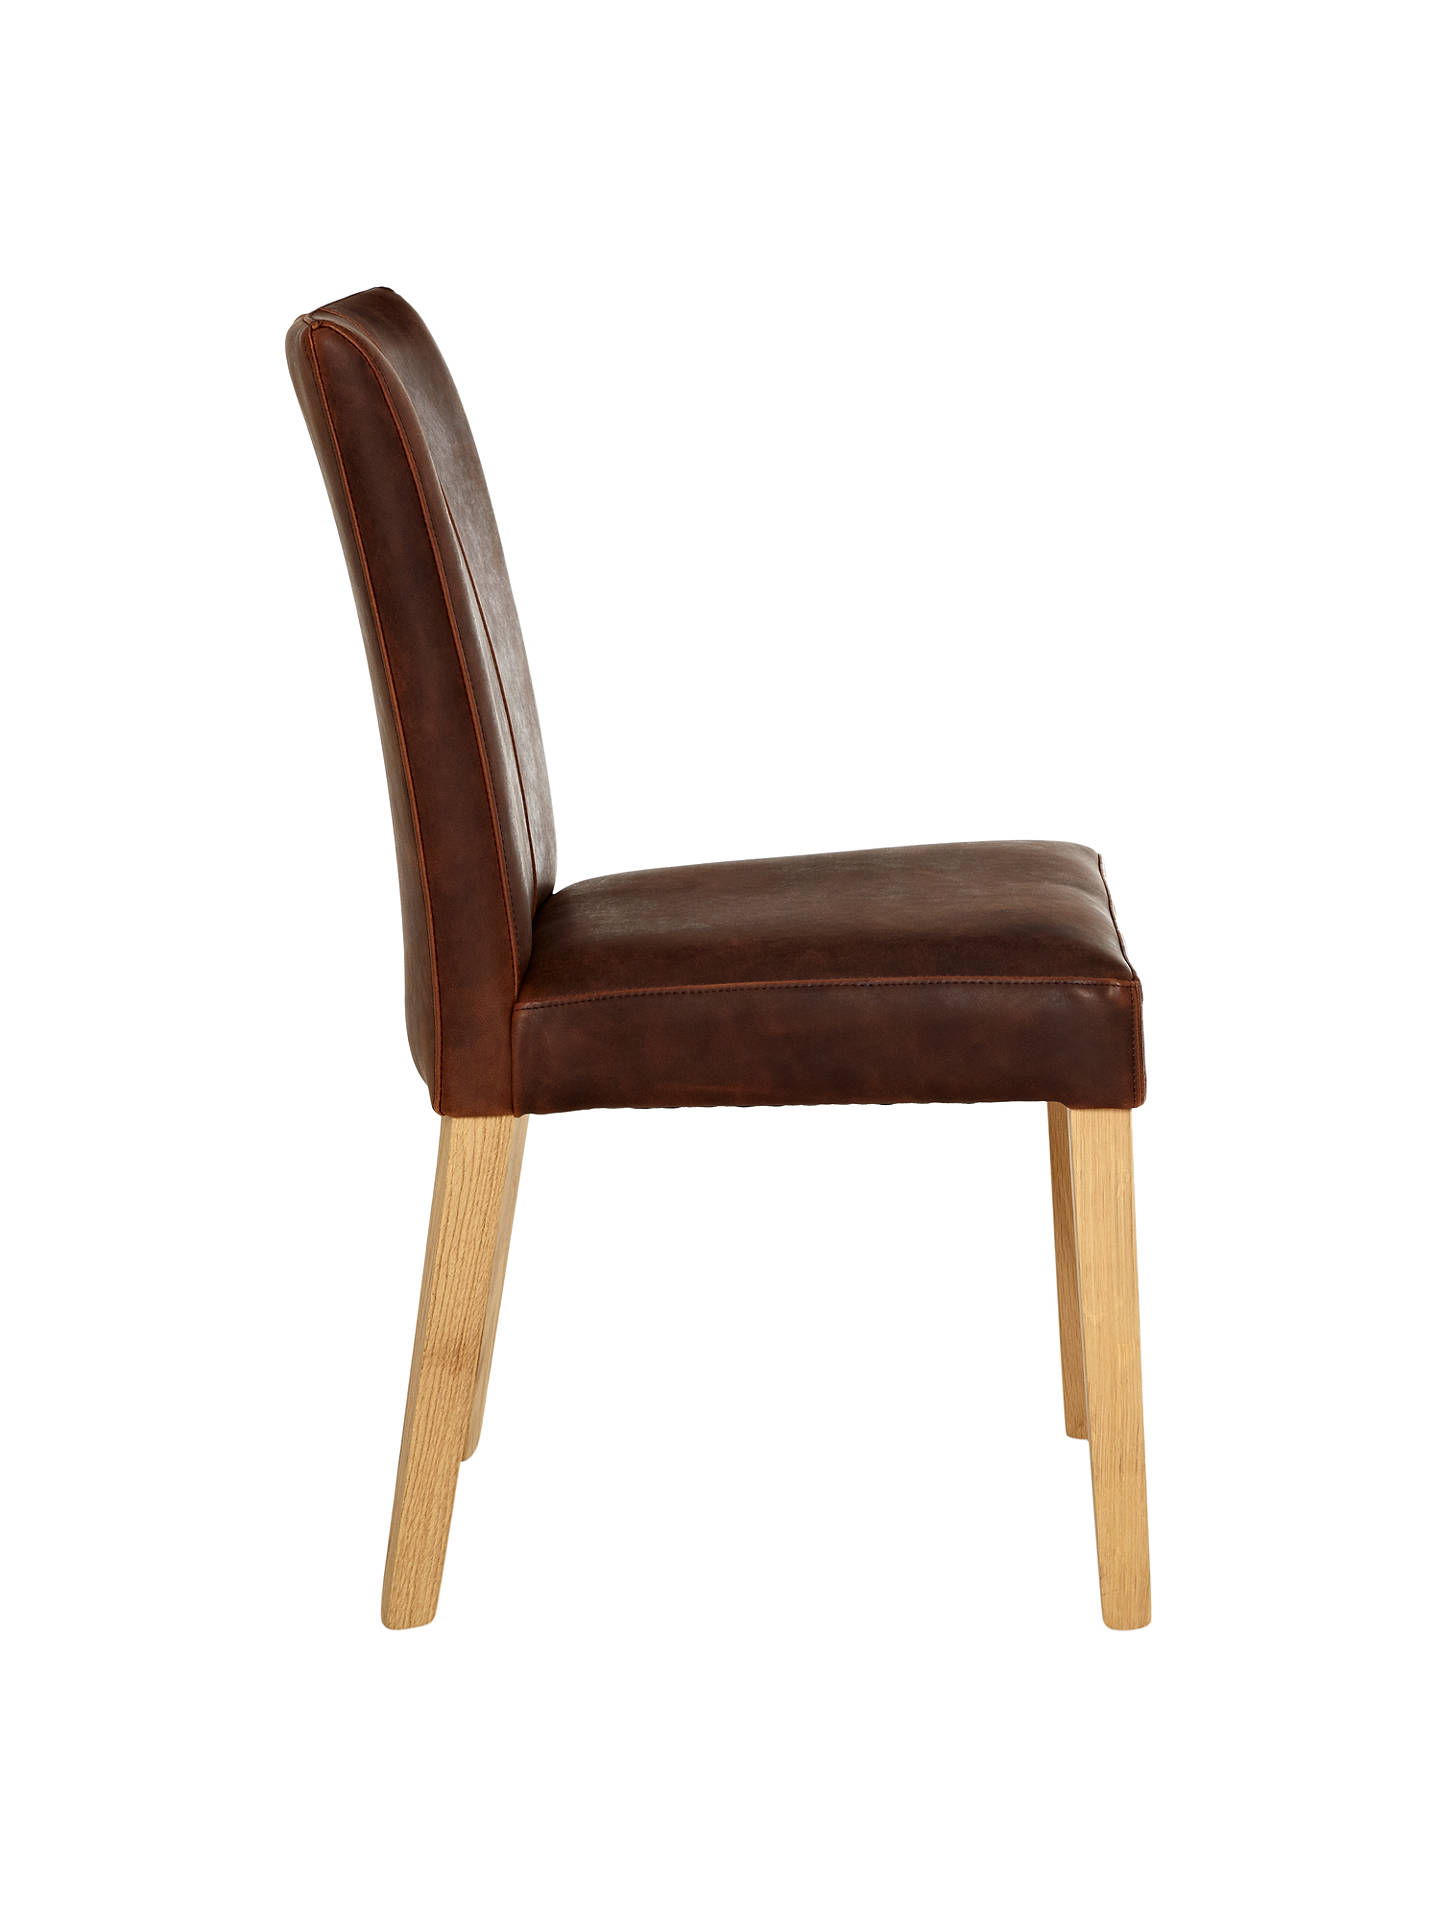 BuyJohn Lewis & Partners Calia Dining Chair, Ash Online at johnlewis.com